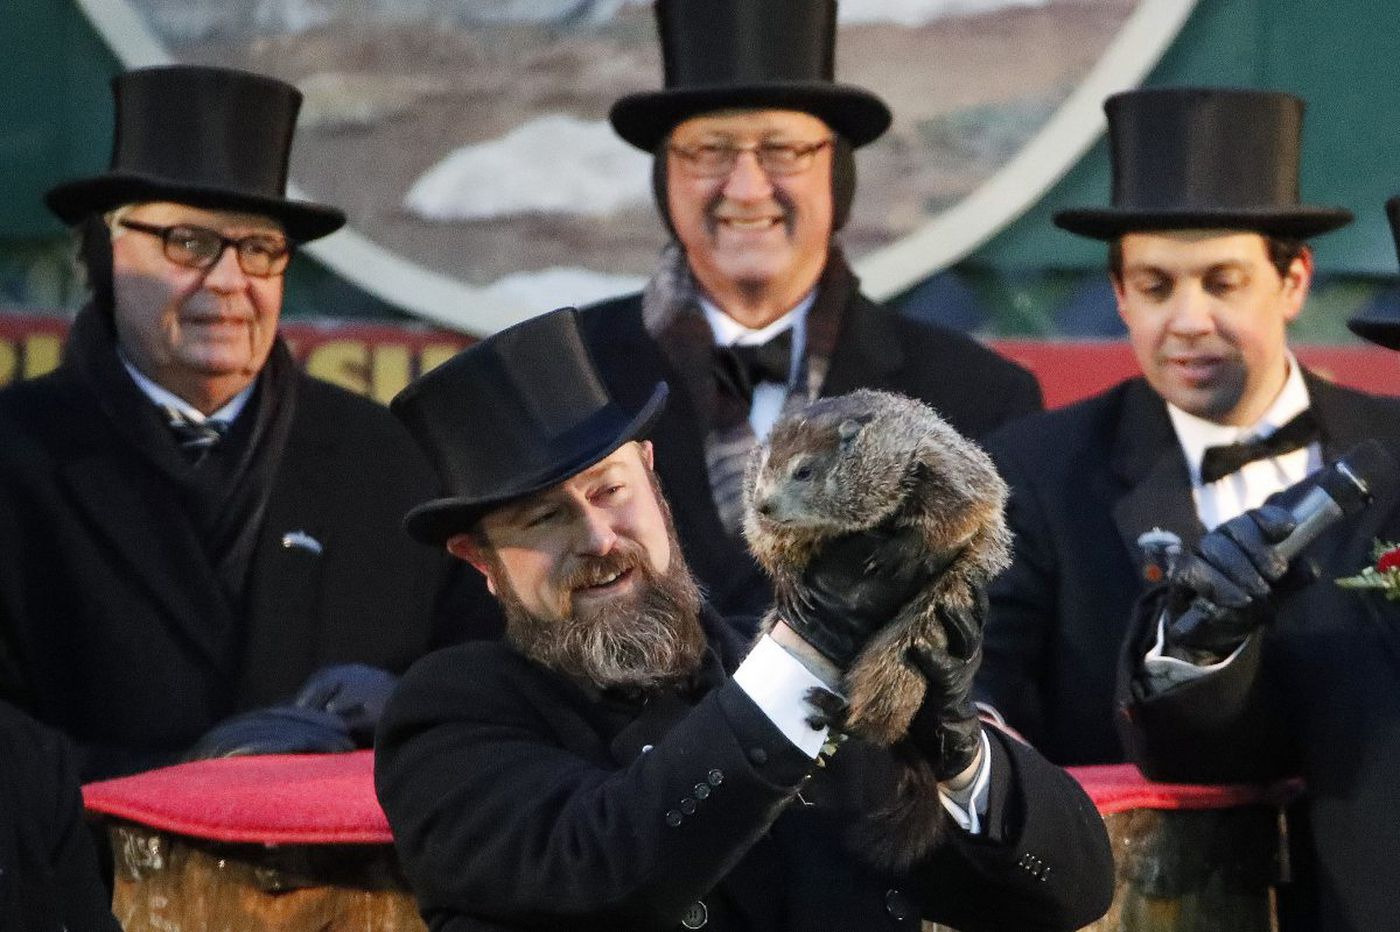 Groundhog says six more weeks of winter. Don't worry: He's usually wrong